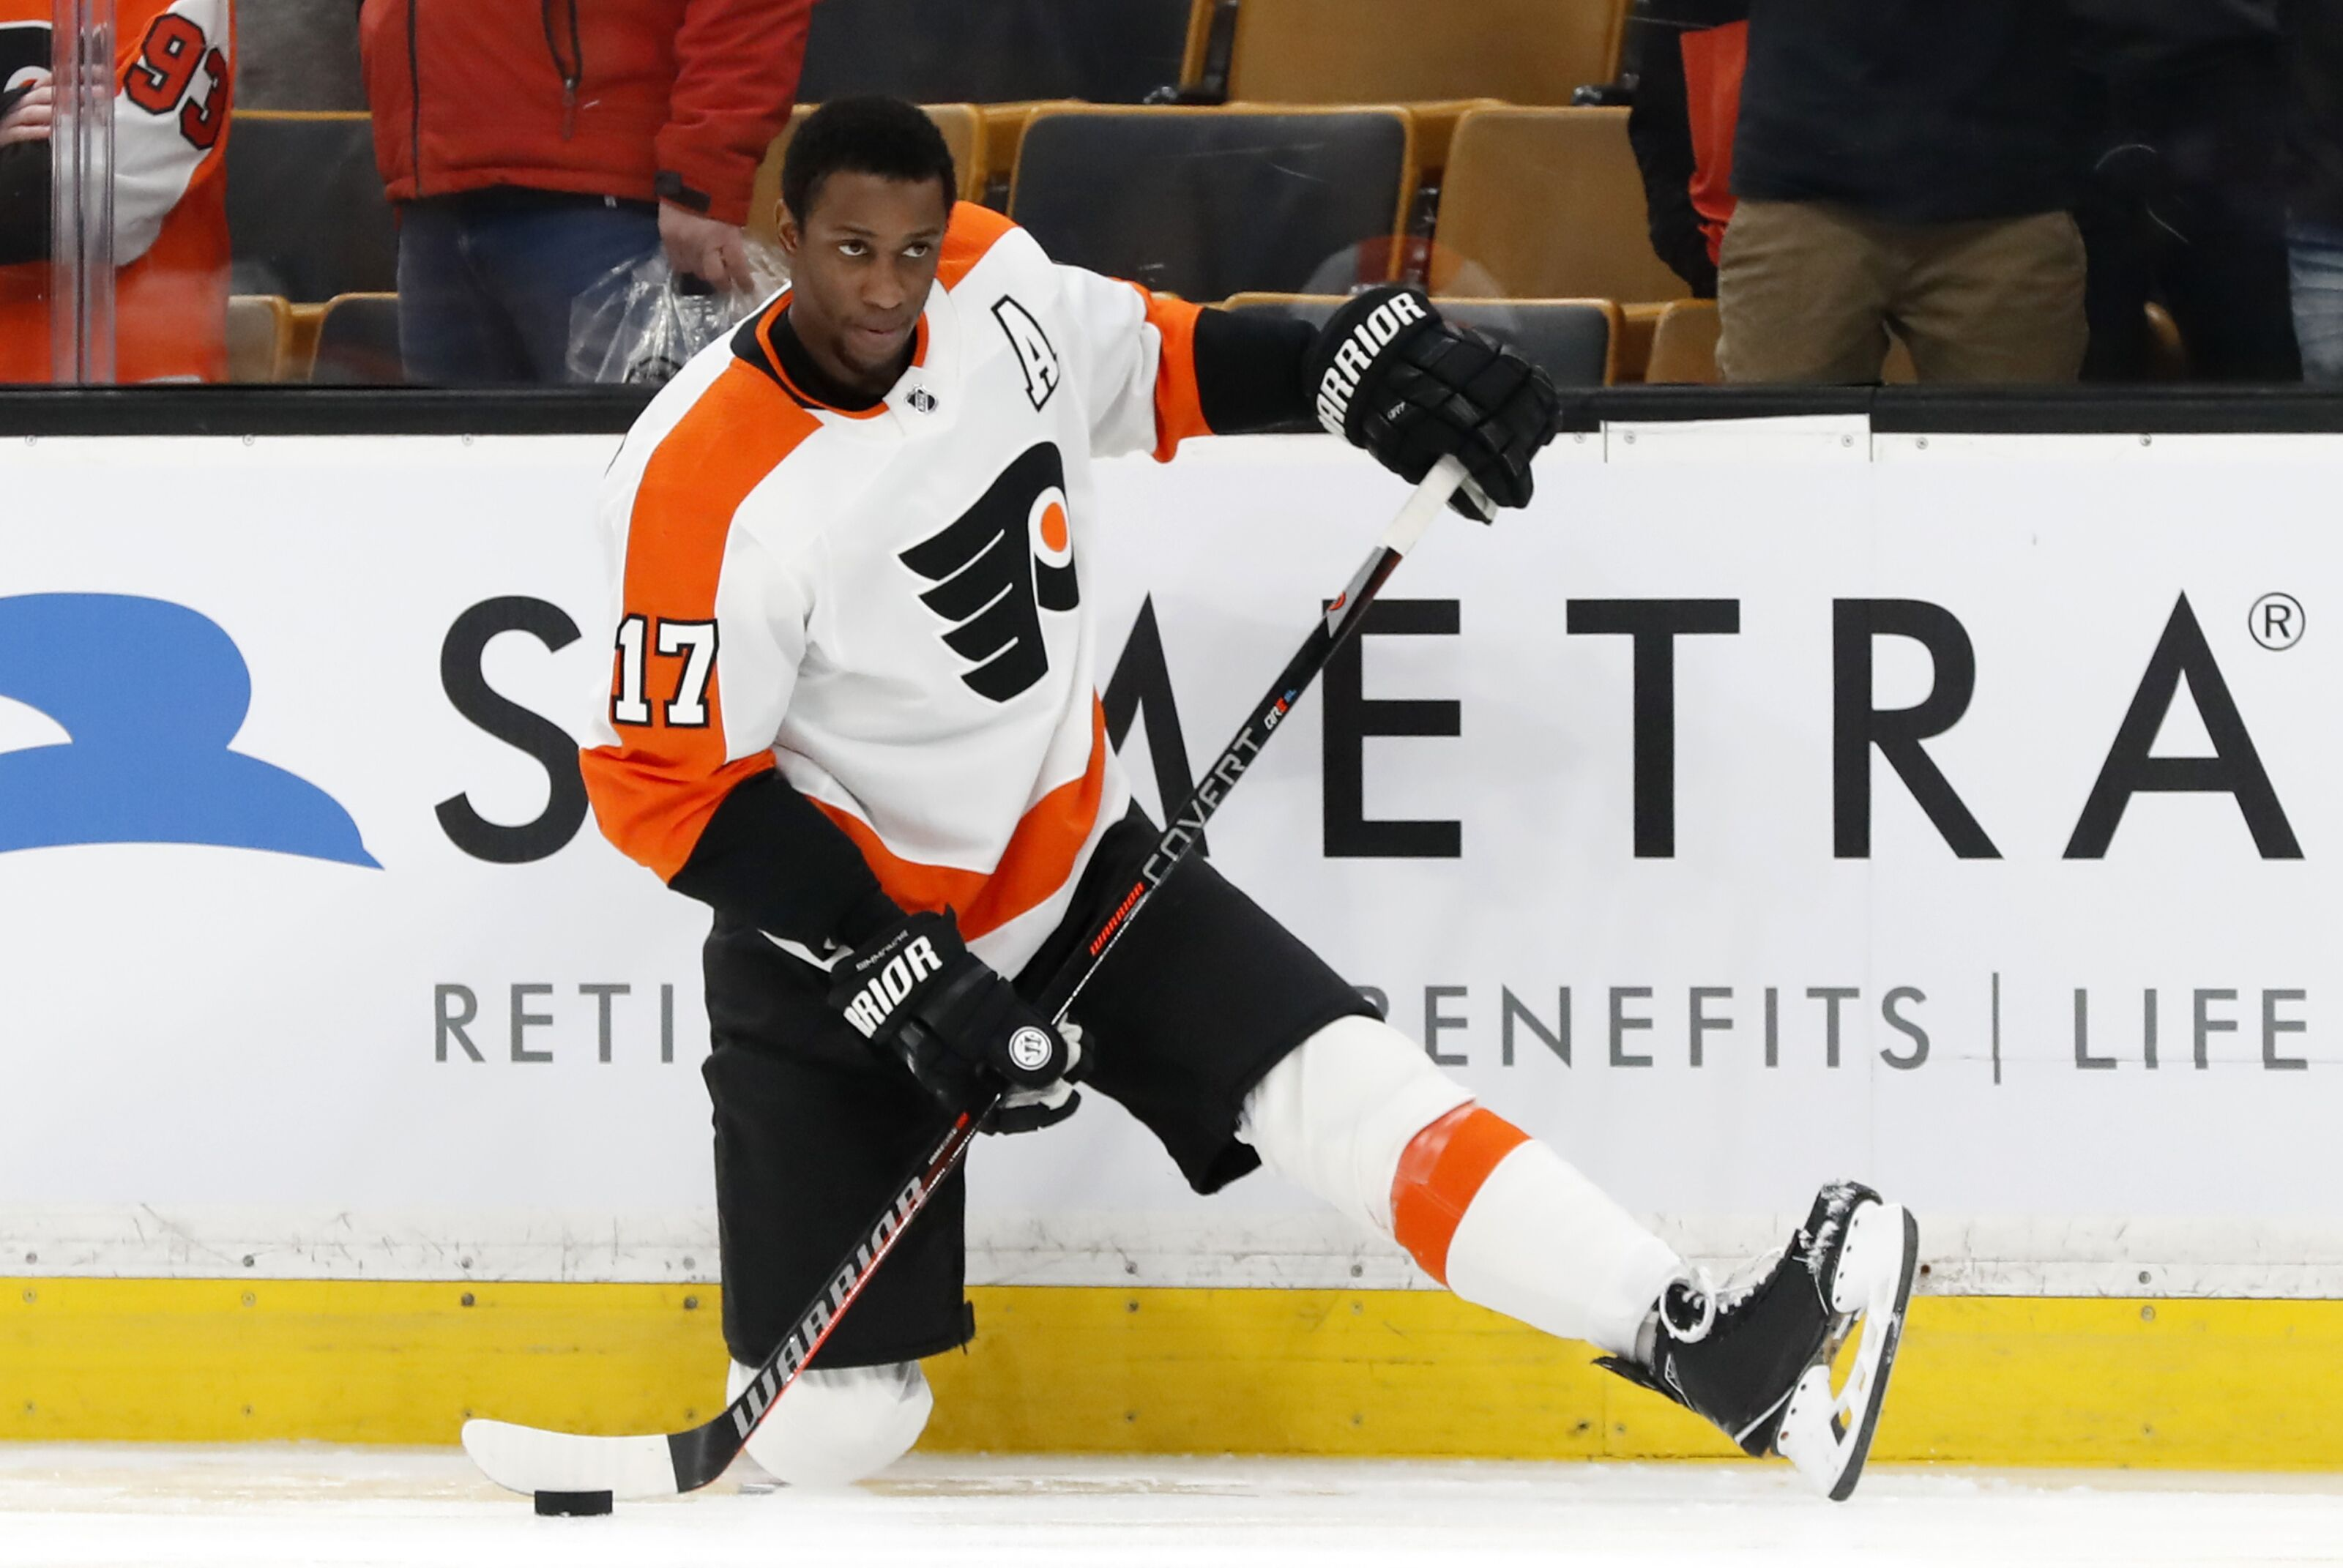 Wayne Simmonds' Possible Suitors and Return Before Trade Deadline